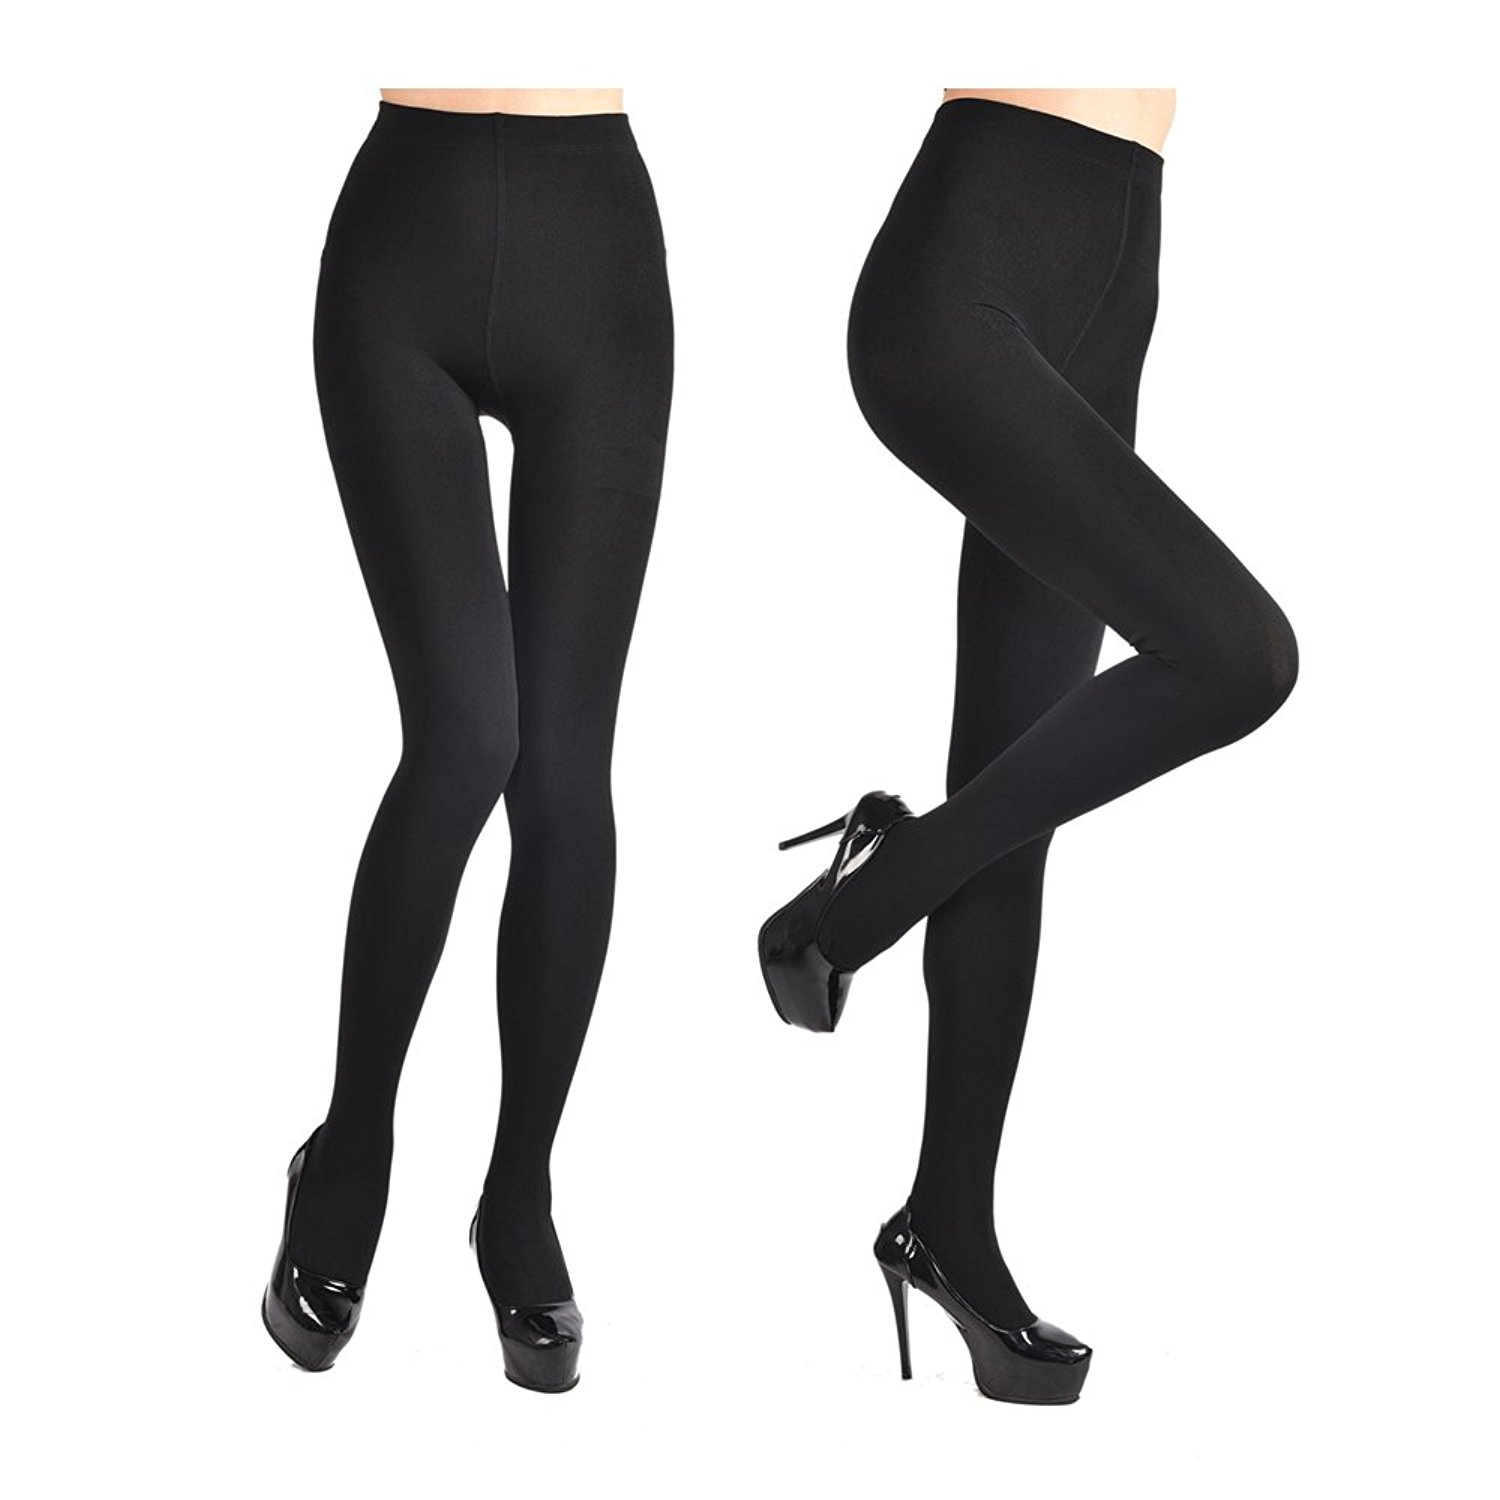 74d9bb6aadb Get Quotations · Fleece Lined Tights for Women Ladies 2Pairs Winter Warm  Pants 3Colors Elstic High Waist Velvet Tights